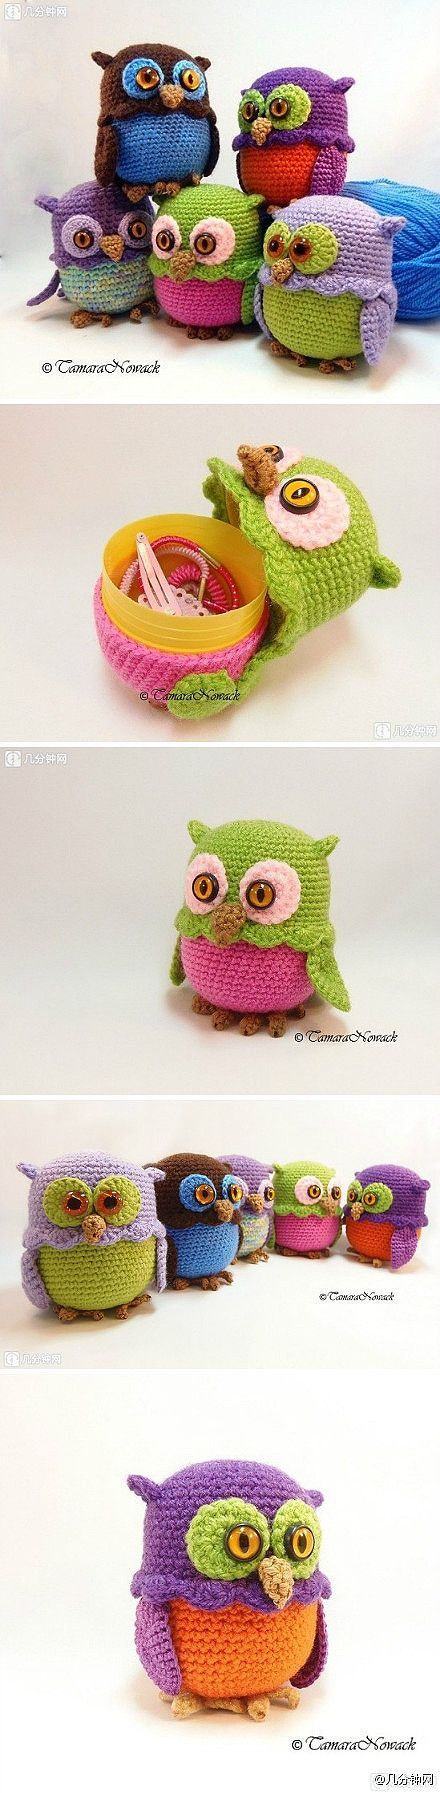 Owl crochet crochet handmade DIY storage box | craft-trade.org